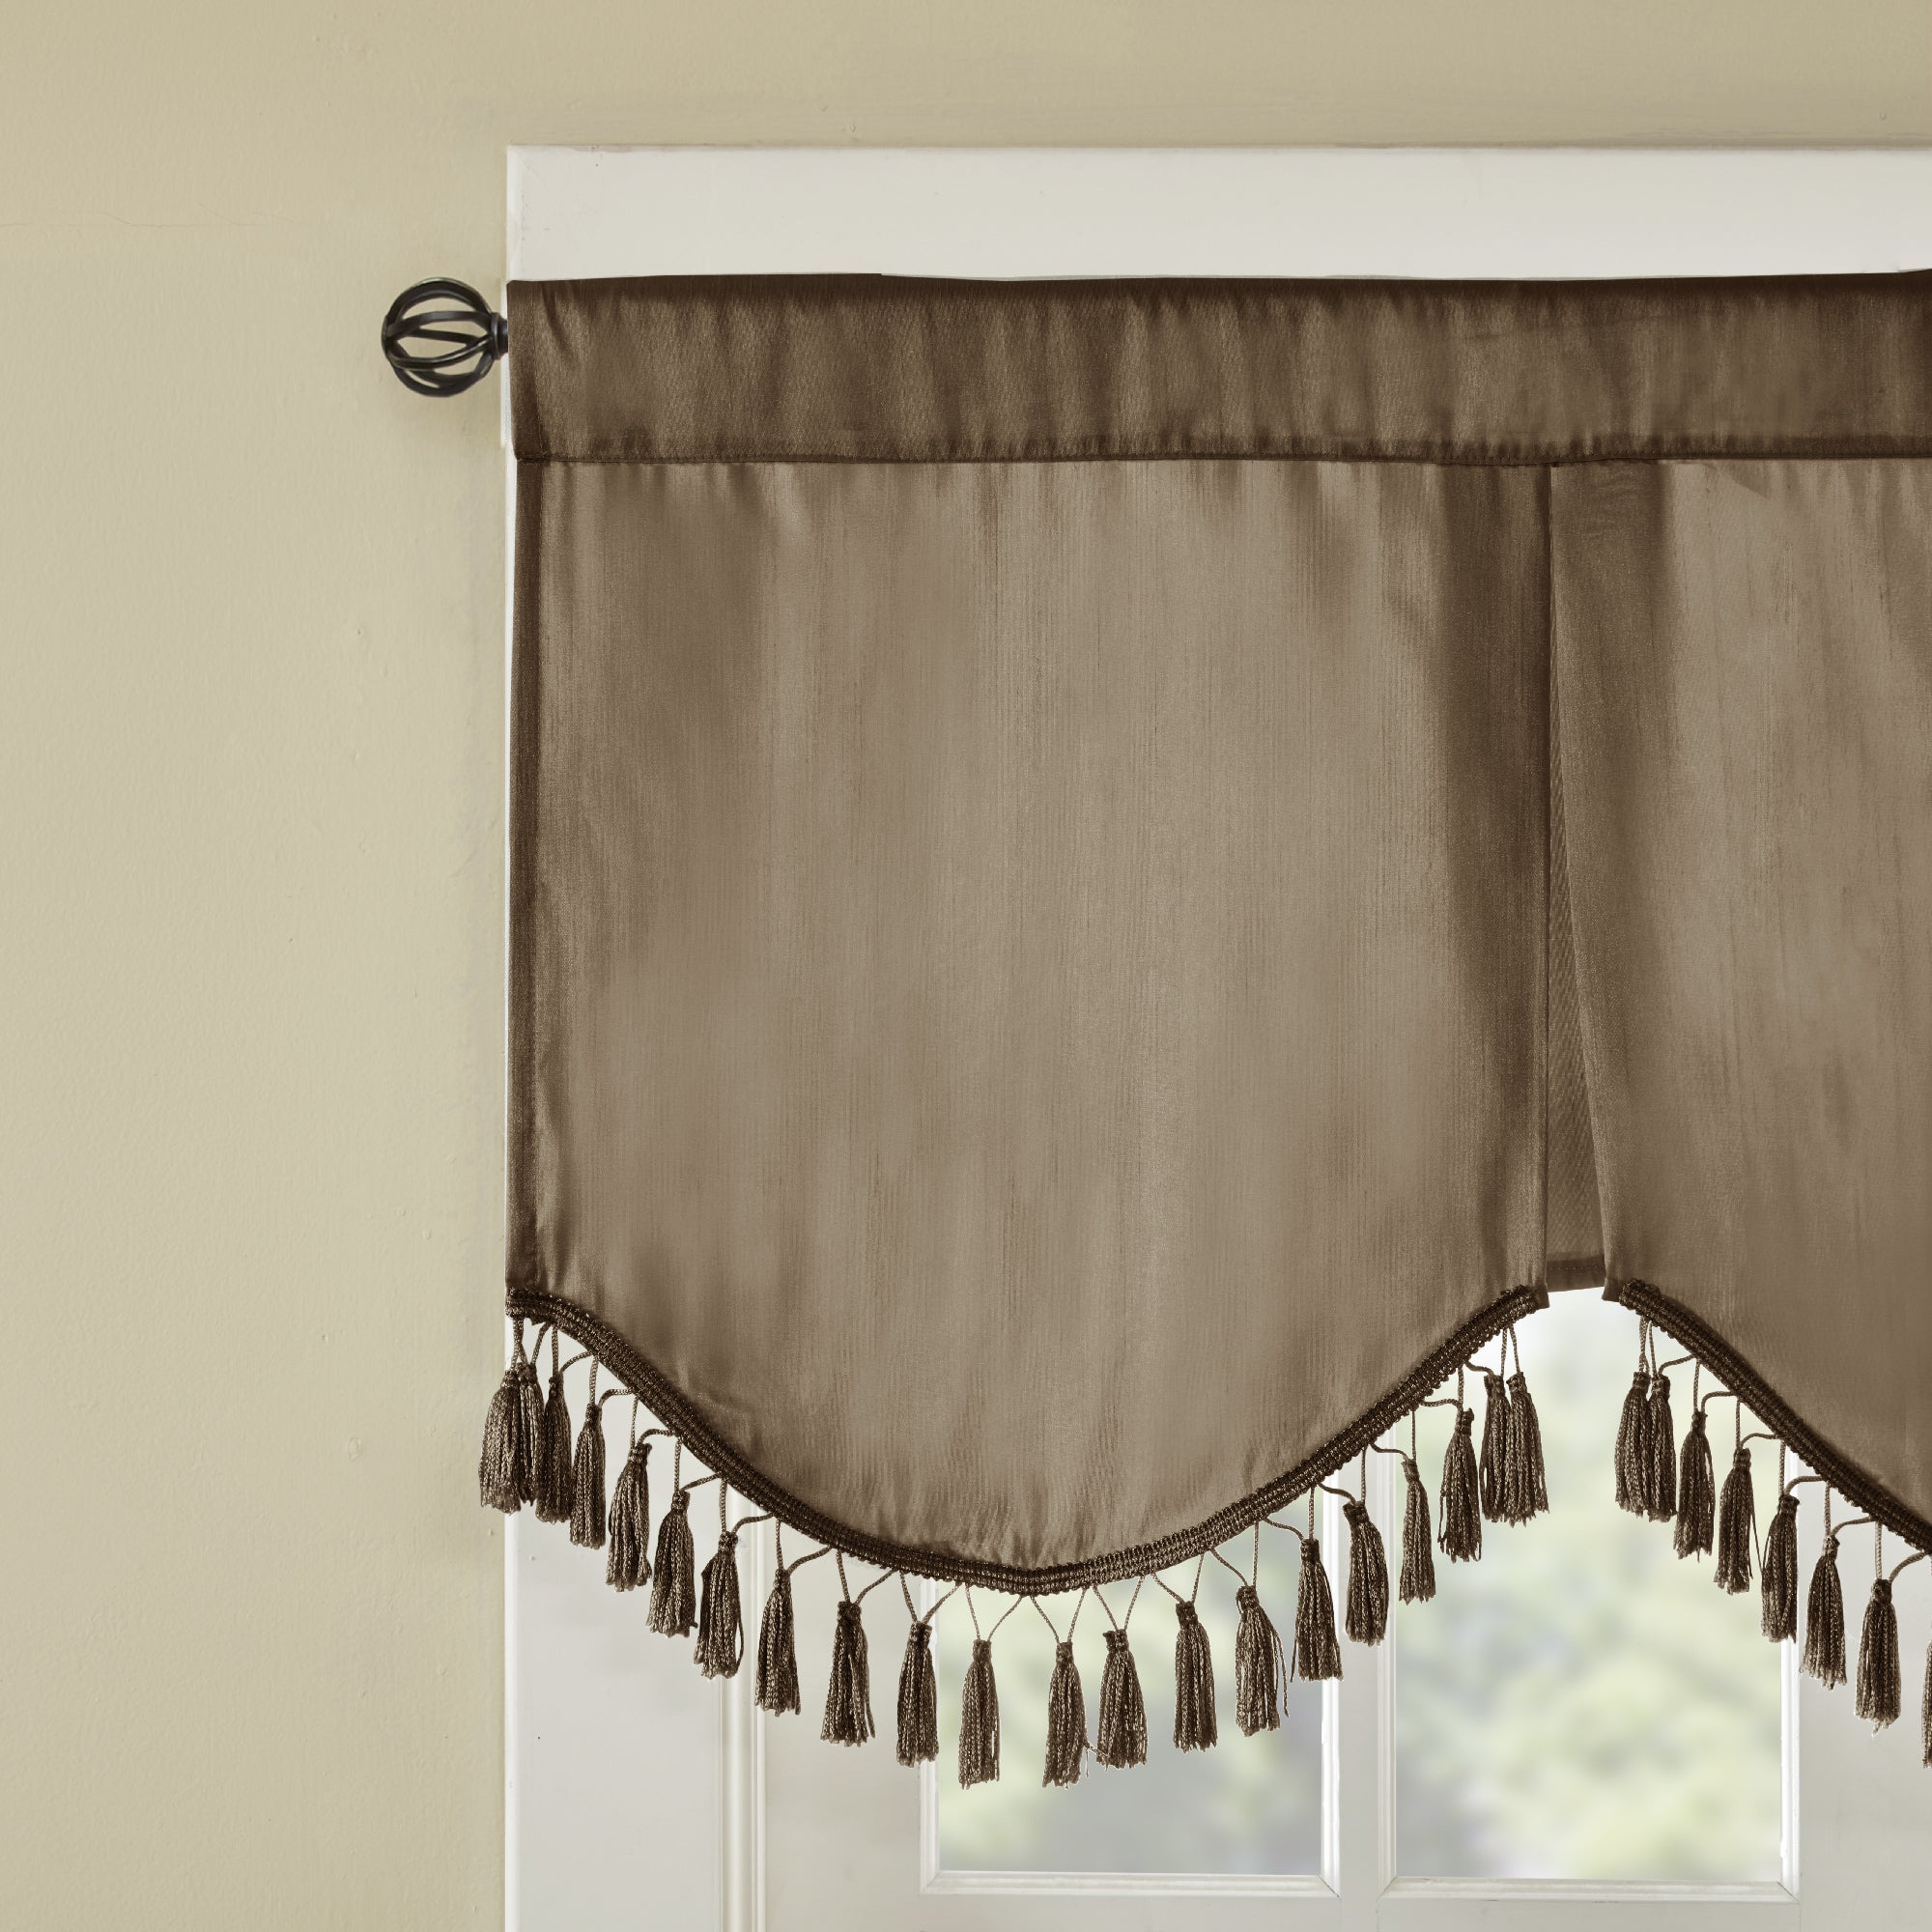 pintuck overstock top product over on madison orders free rod window with park tradewinds valance shipping lined pocket valances home finish garden